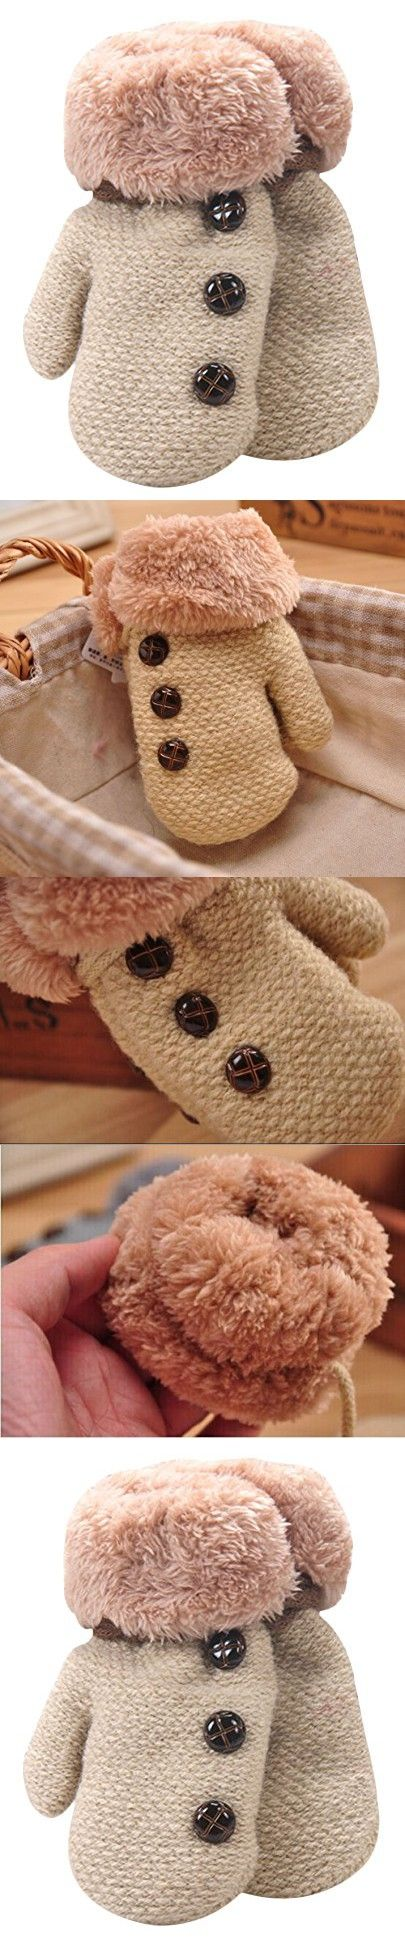 TagoWell Baby Boys Toddler Warm Thick Button Knitted Gloves Mittens With String Beige